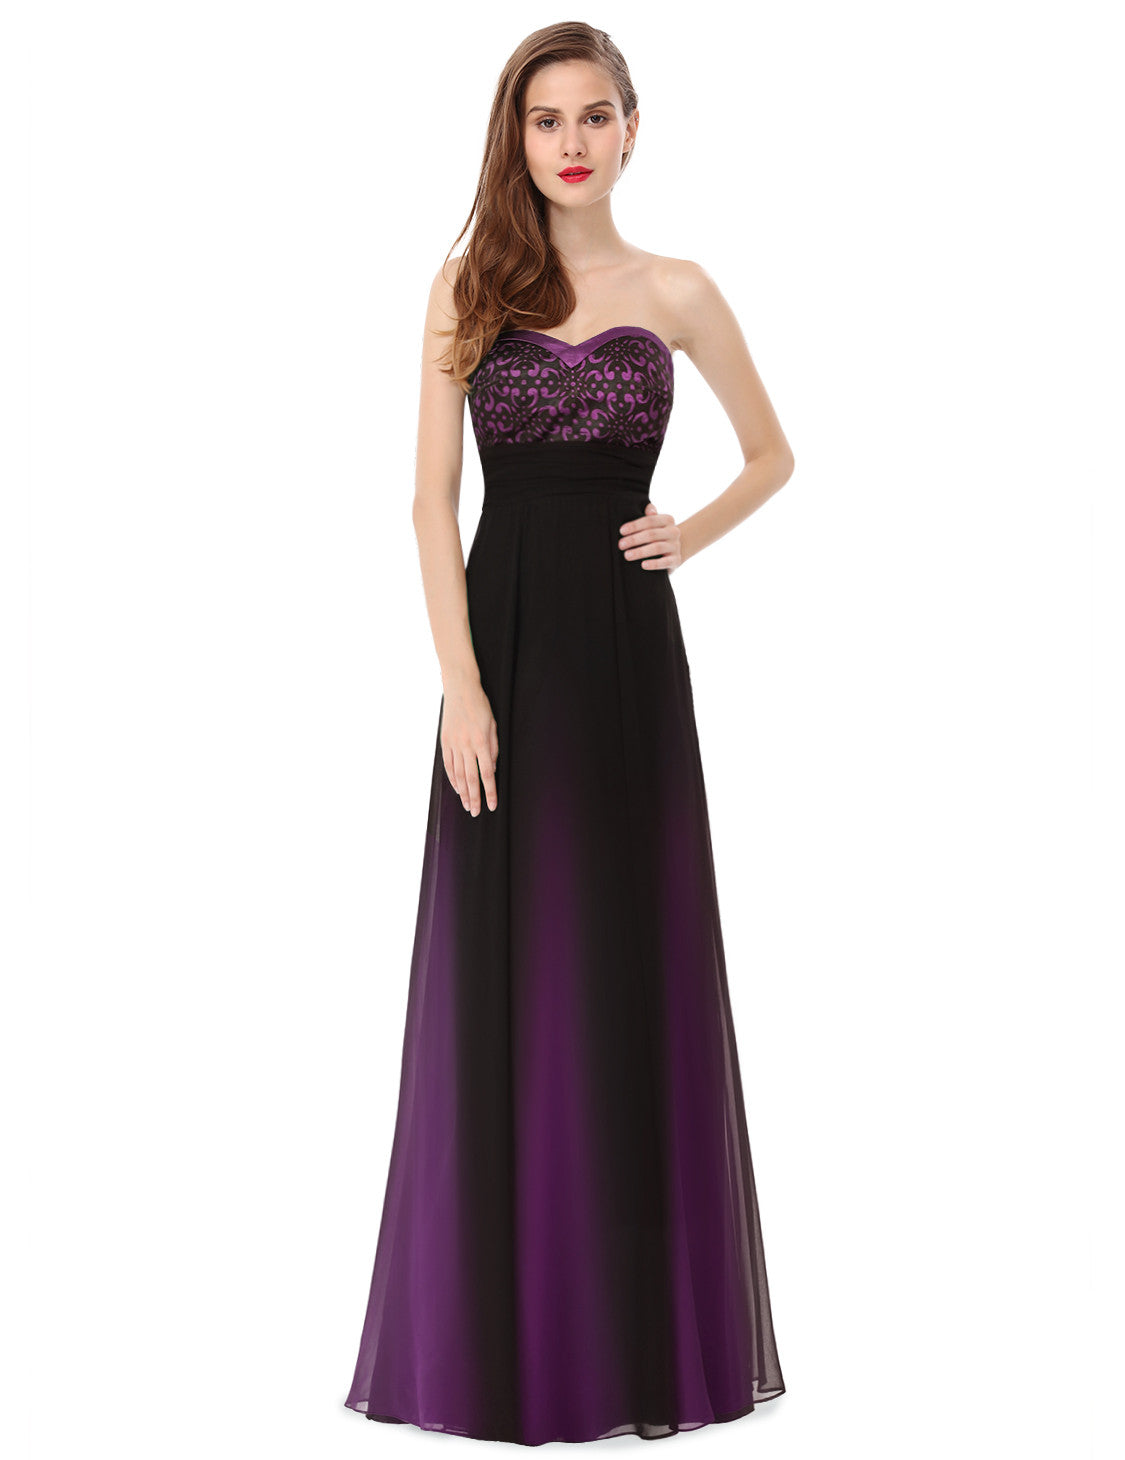 Obeige Mystical Purple Elegant Strapless Long Evening Dress - O'beige